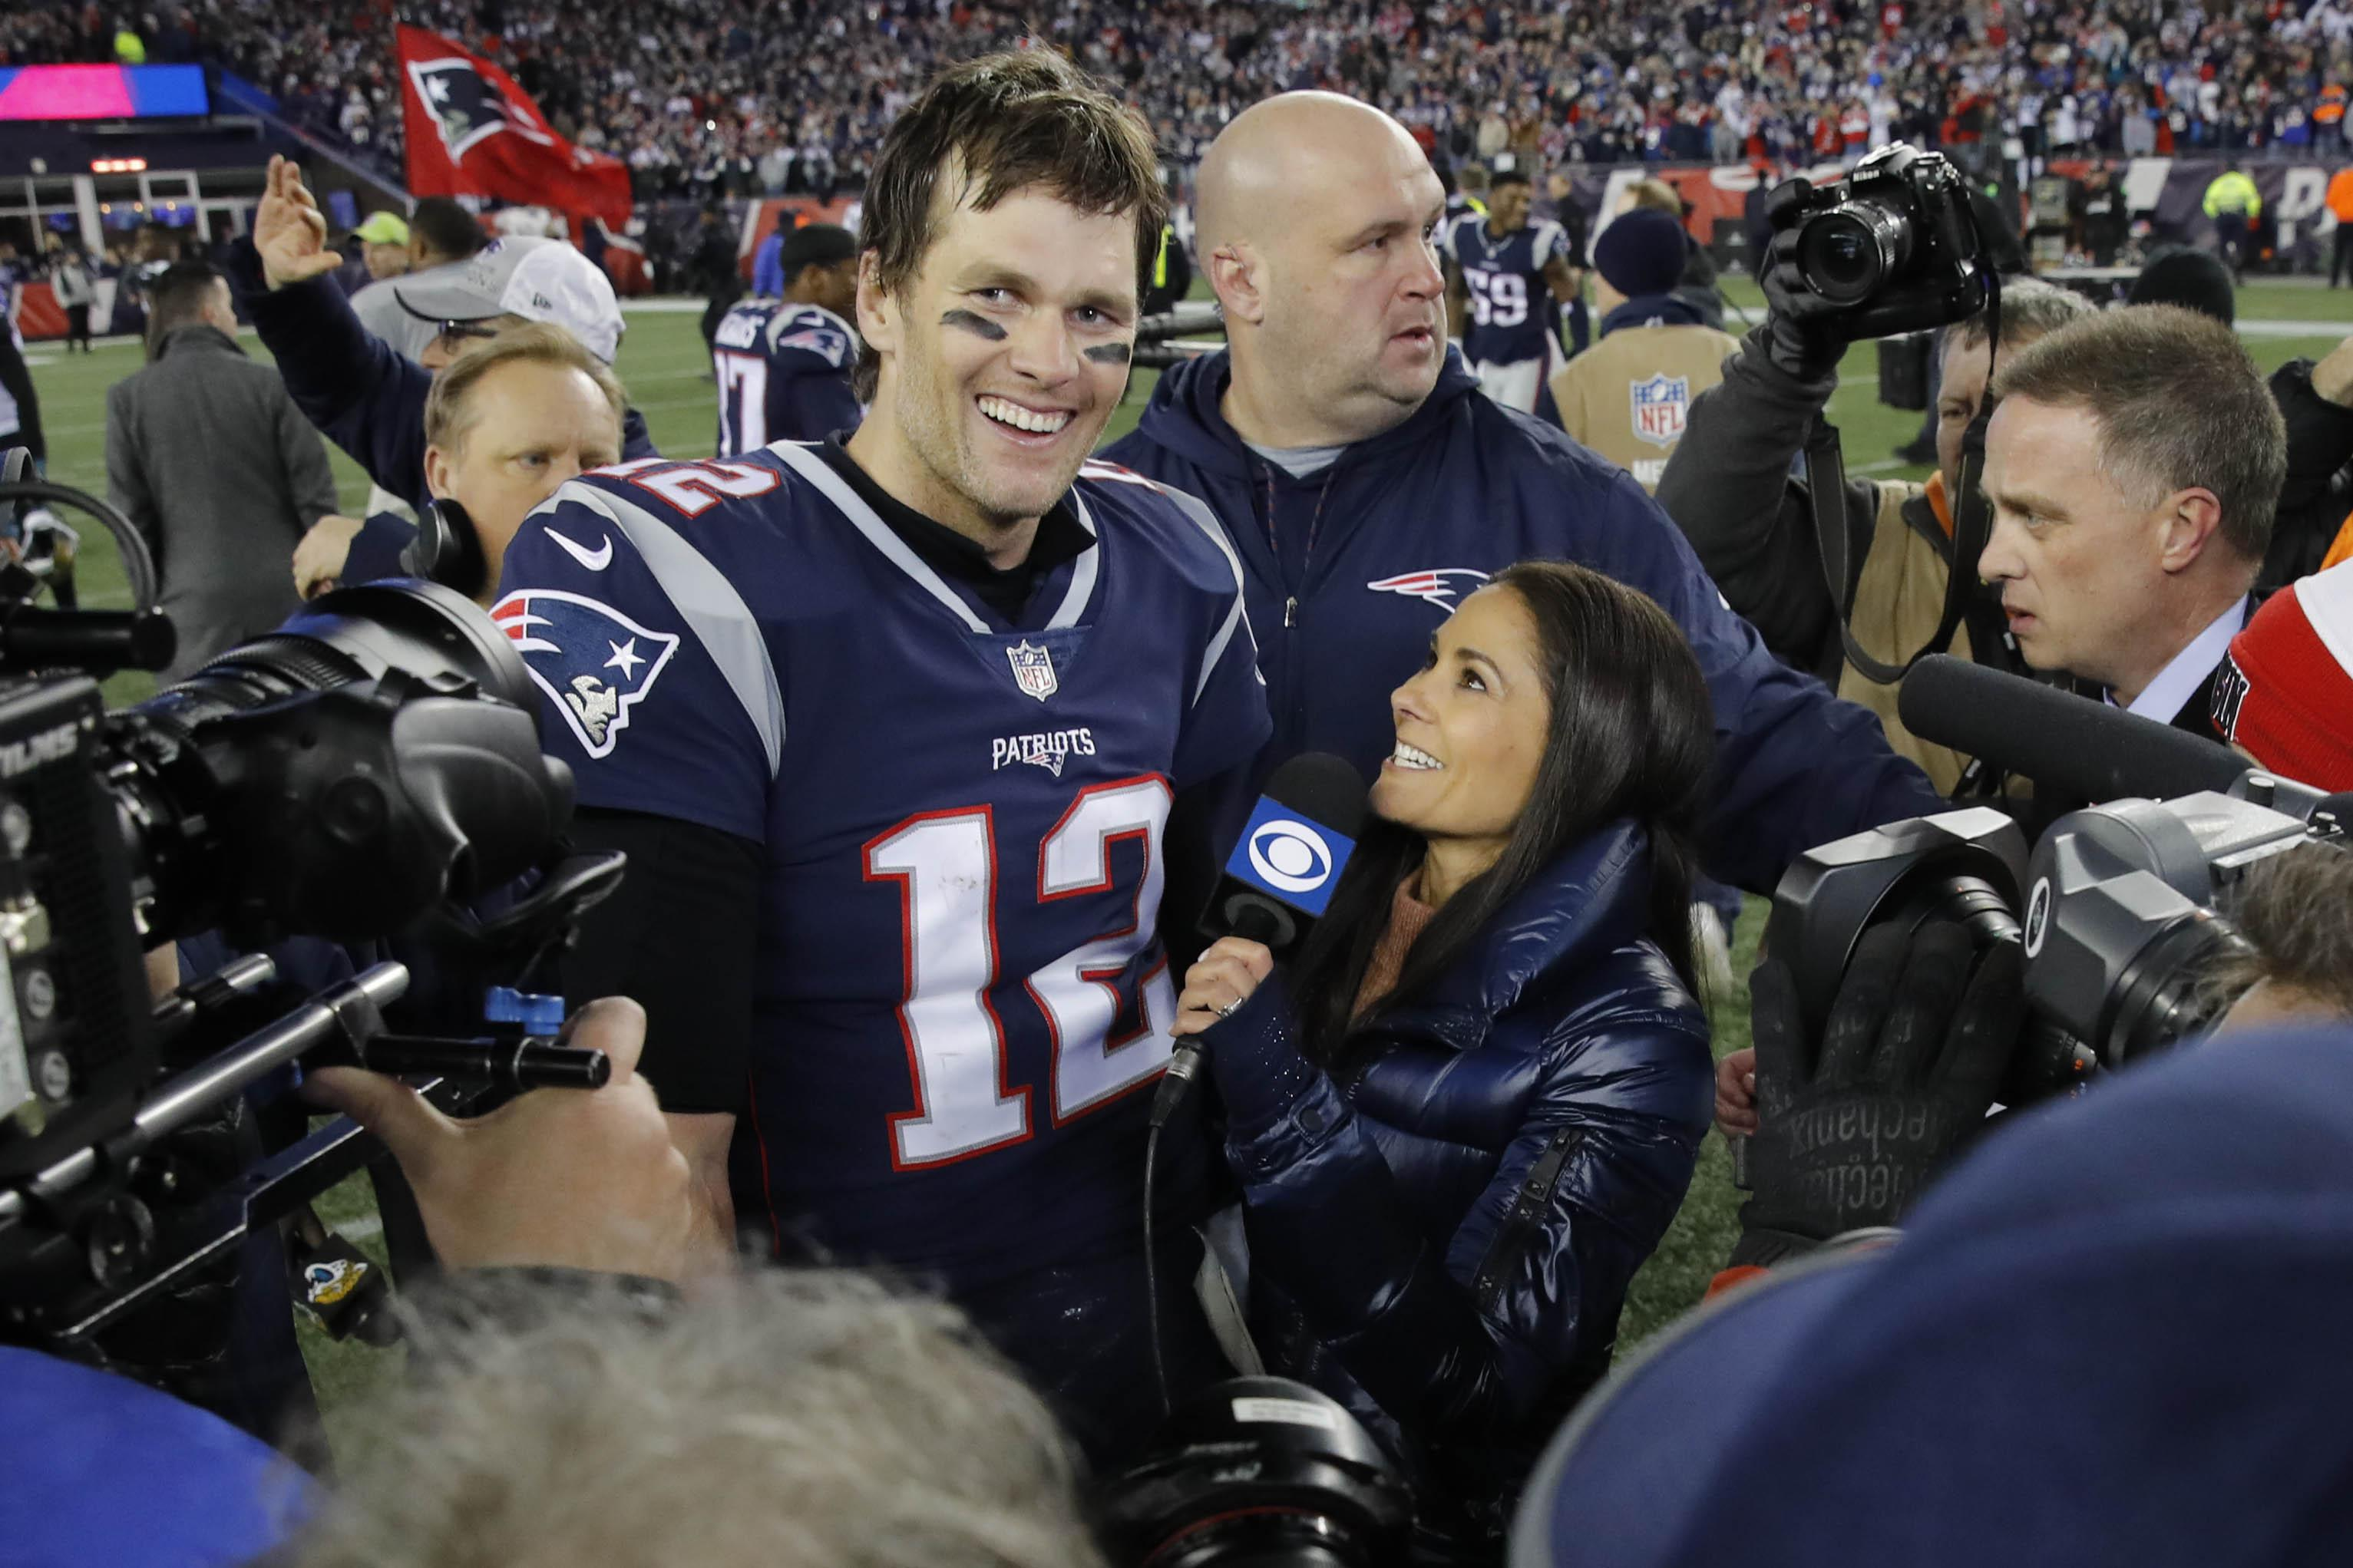 Tom Brady marshalled another stunning comeback from 10 points down against Jacksonville to reach the Super Bowl